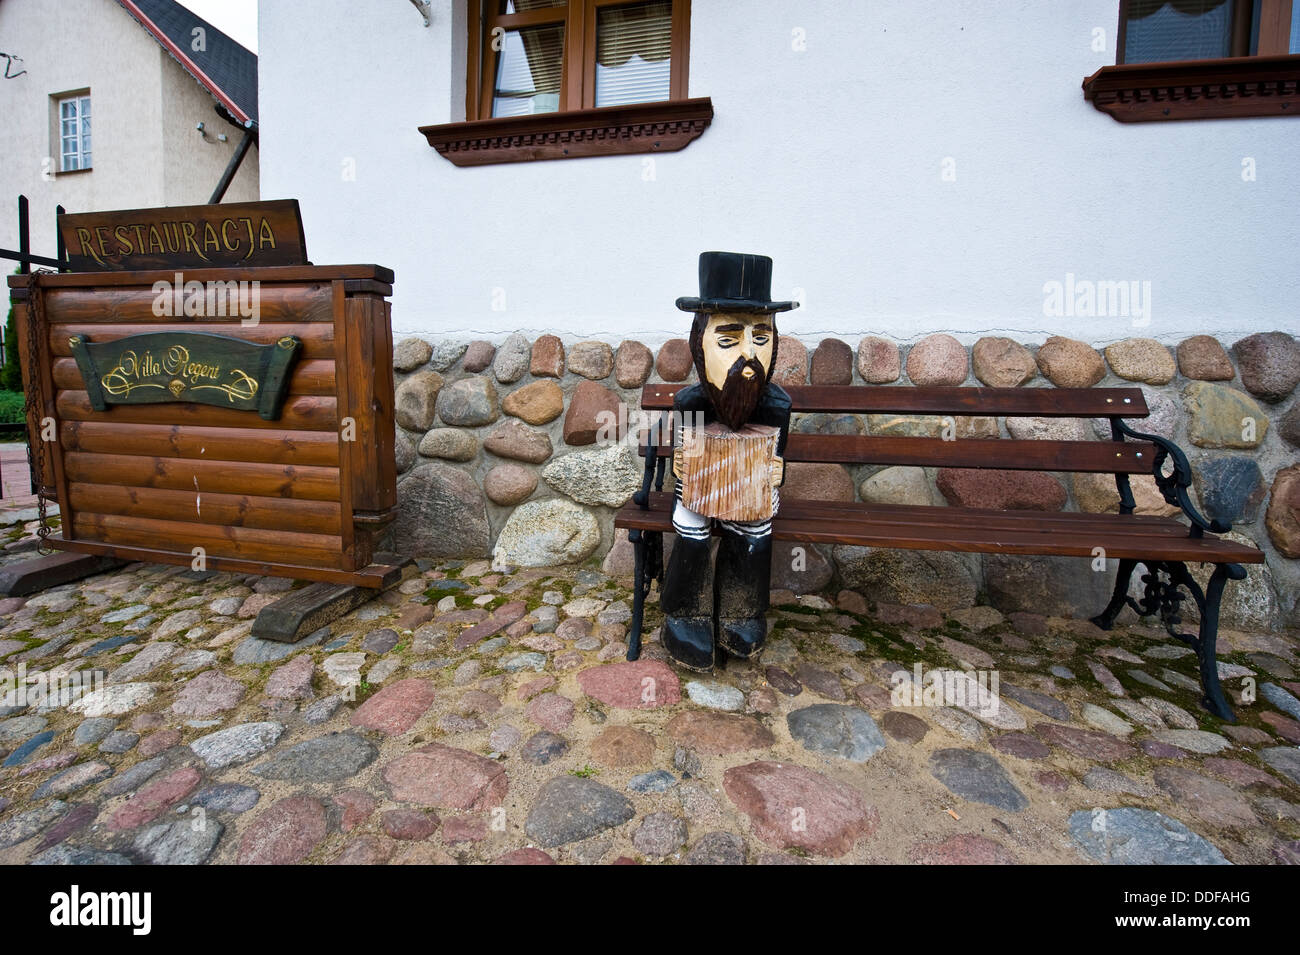 A wooden figure of a klezmer musician in front of a restaurant in Tykocin, in north-eastern Poland. - Stock Image